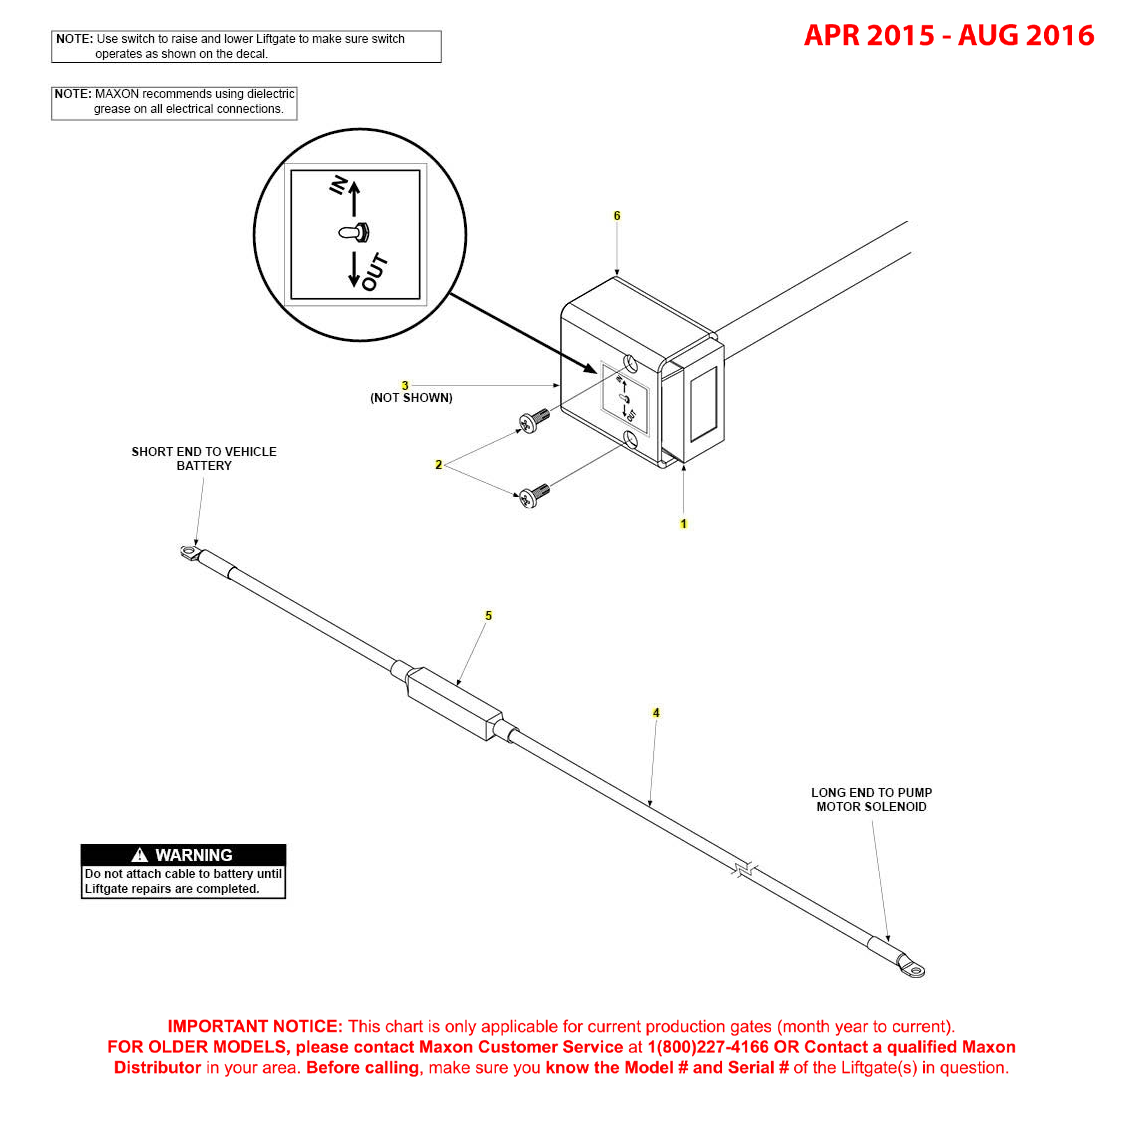 GPTWR (Apr 2015 - Aug 2016) Control Switch And Power Cable Diagram